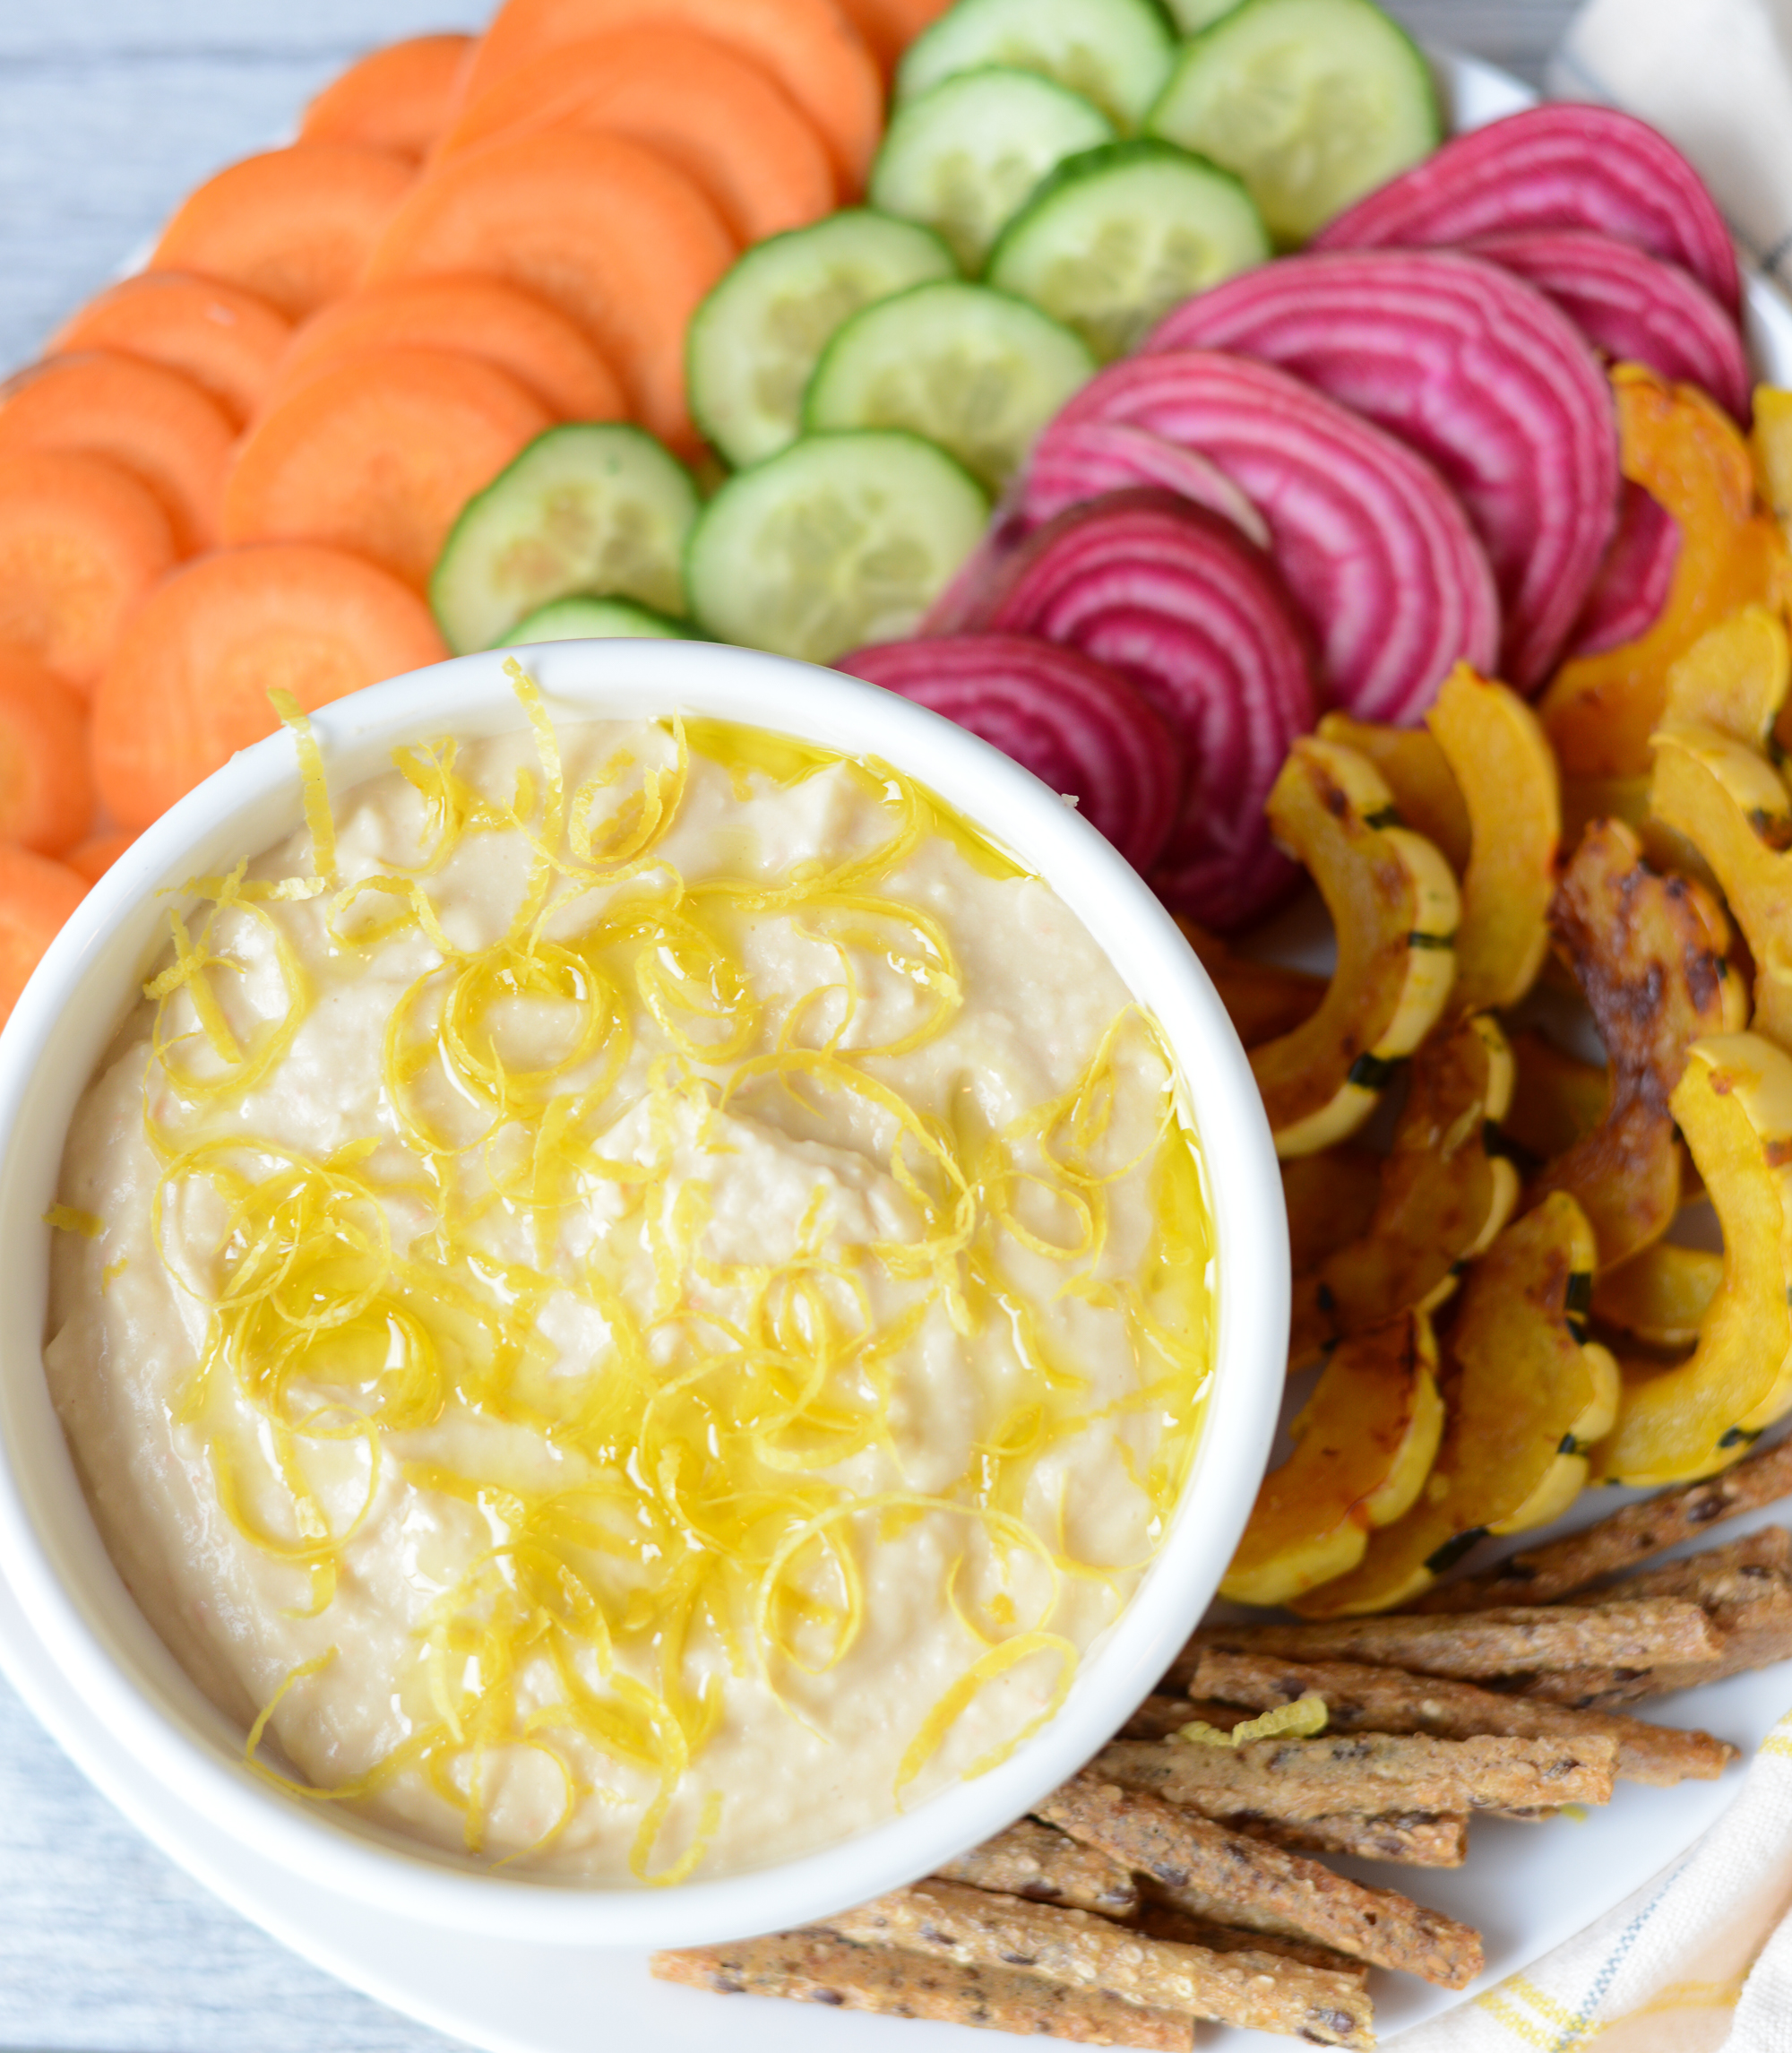 Simple Lemony White Bean Dip. An easy, healthy, real food appetizer, dip, or snack. Naturally gluten-free, dairy-free, and nut-free. realfoodwholelife.com.